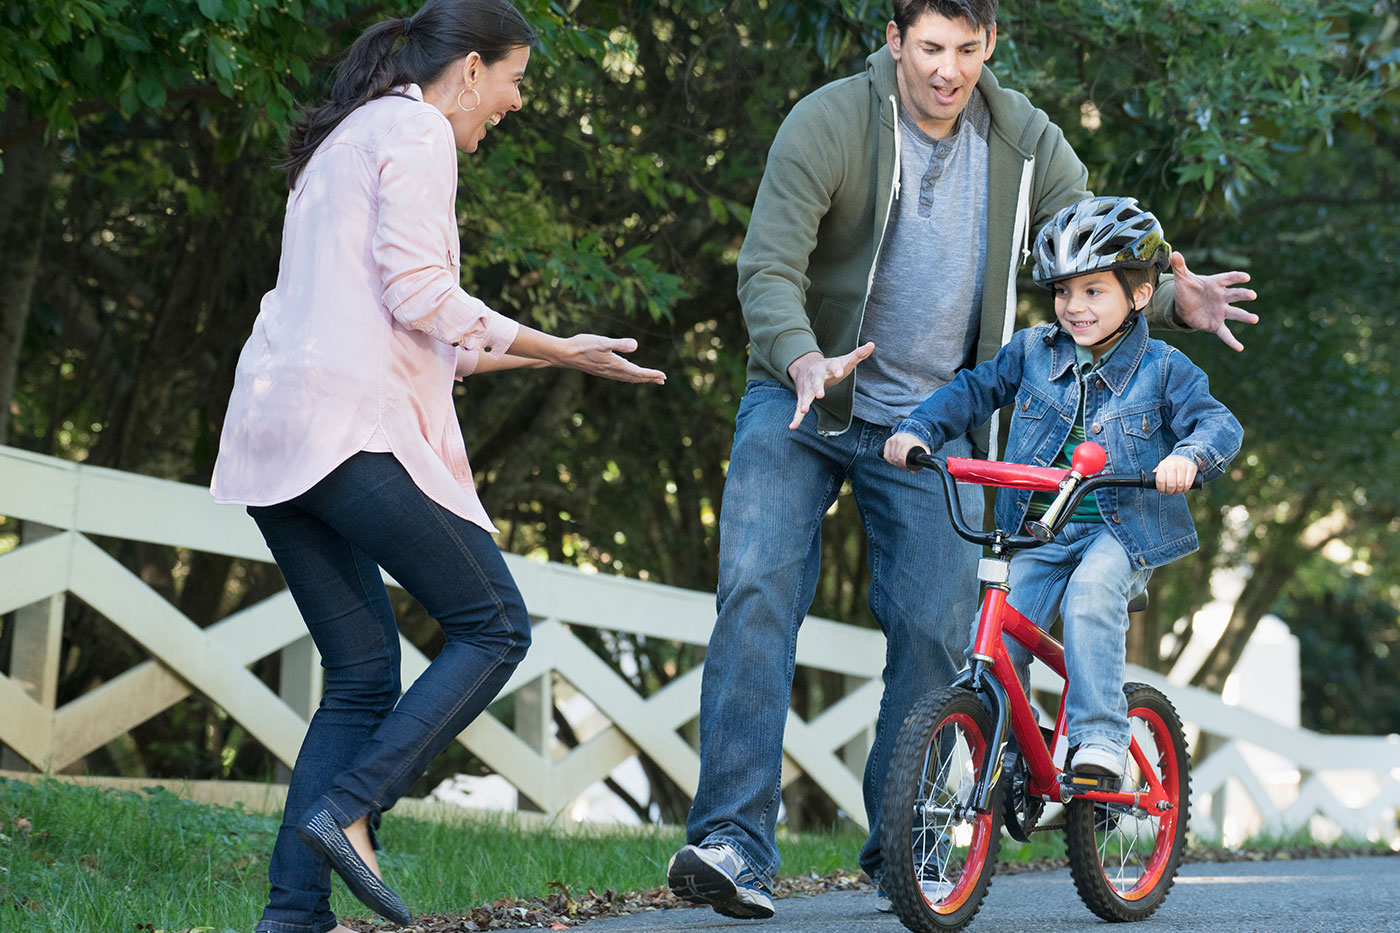 Hispanic mother and father celebrating their son riding his bike.